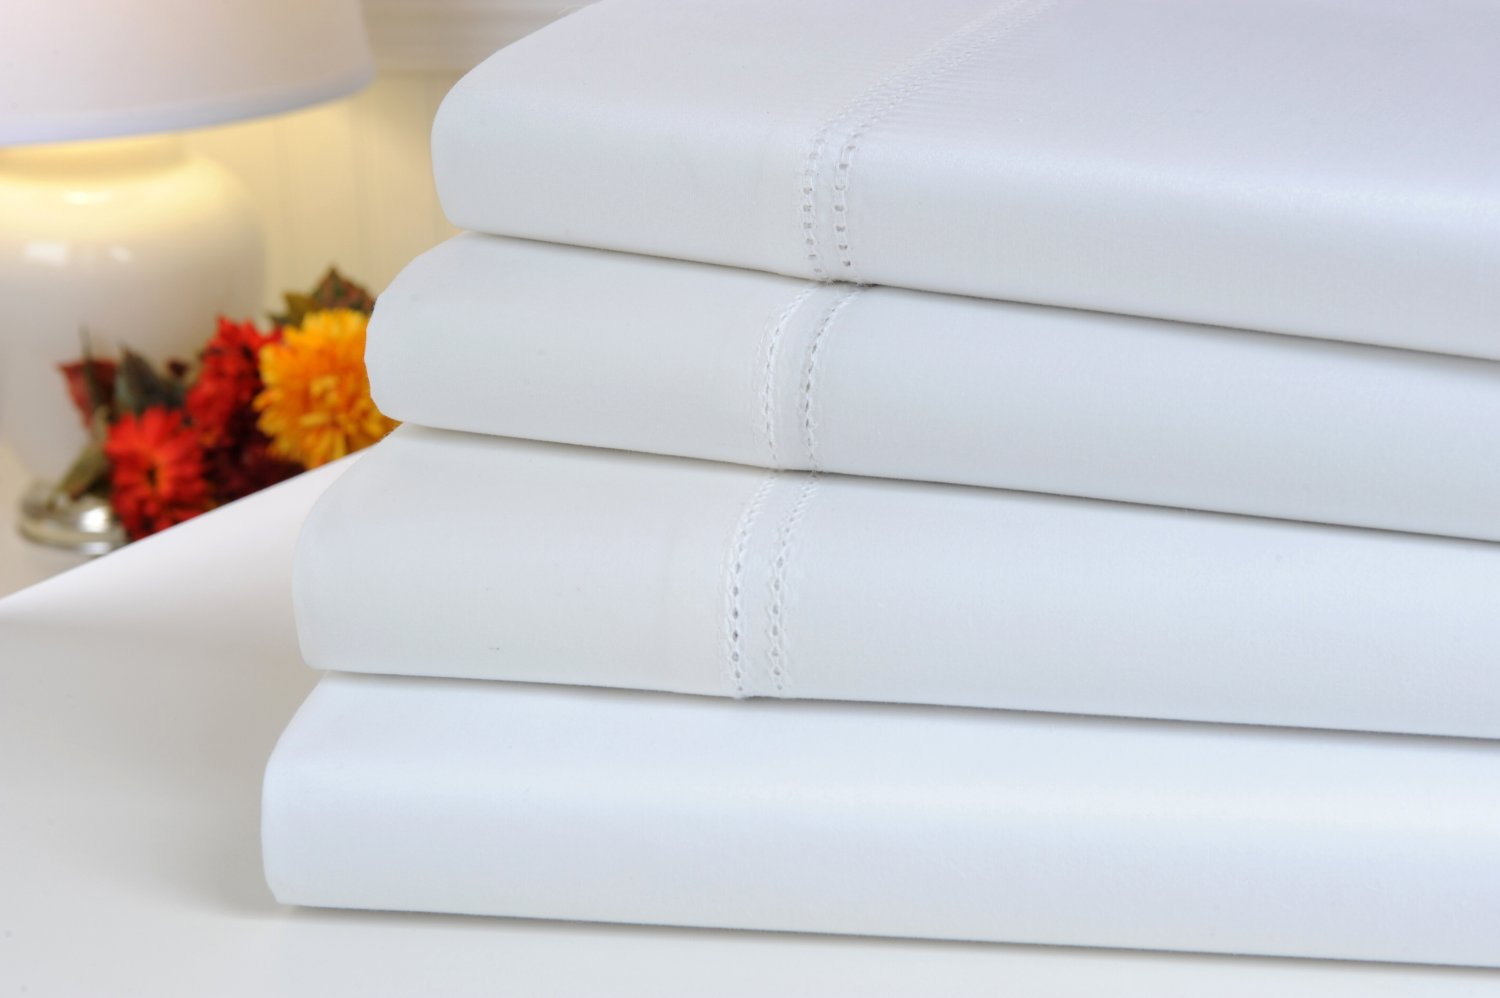 Oxford Collection 1000 Thread Count Hemstitch Egyptian Cotton King Sheet Set, White